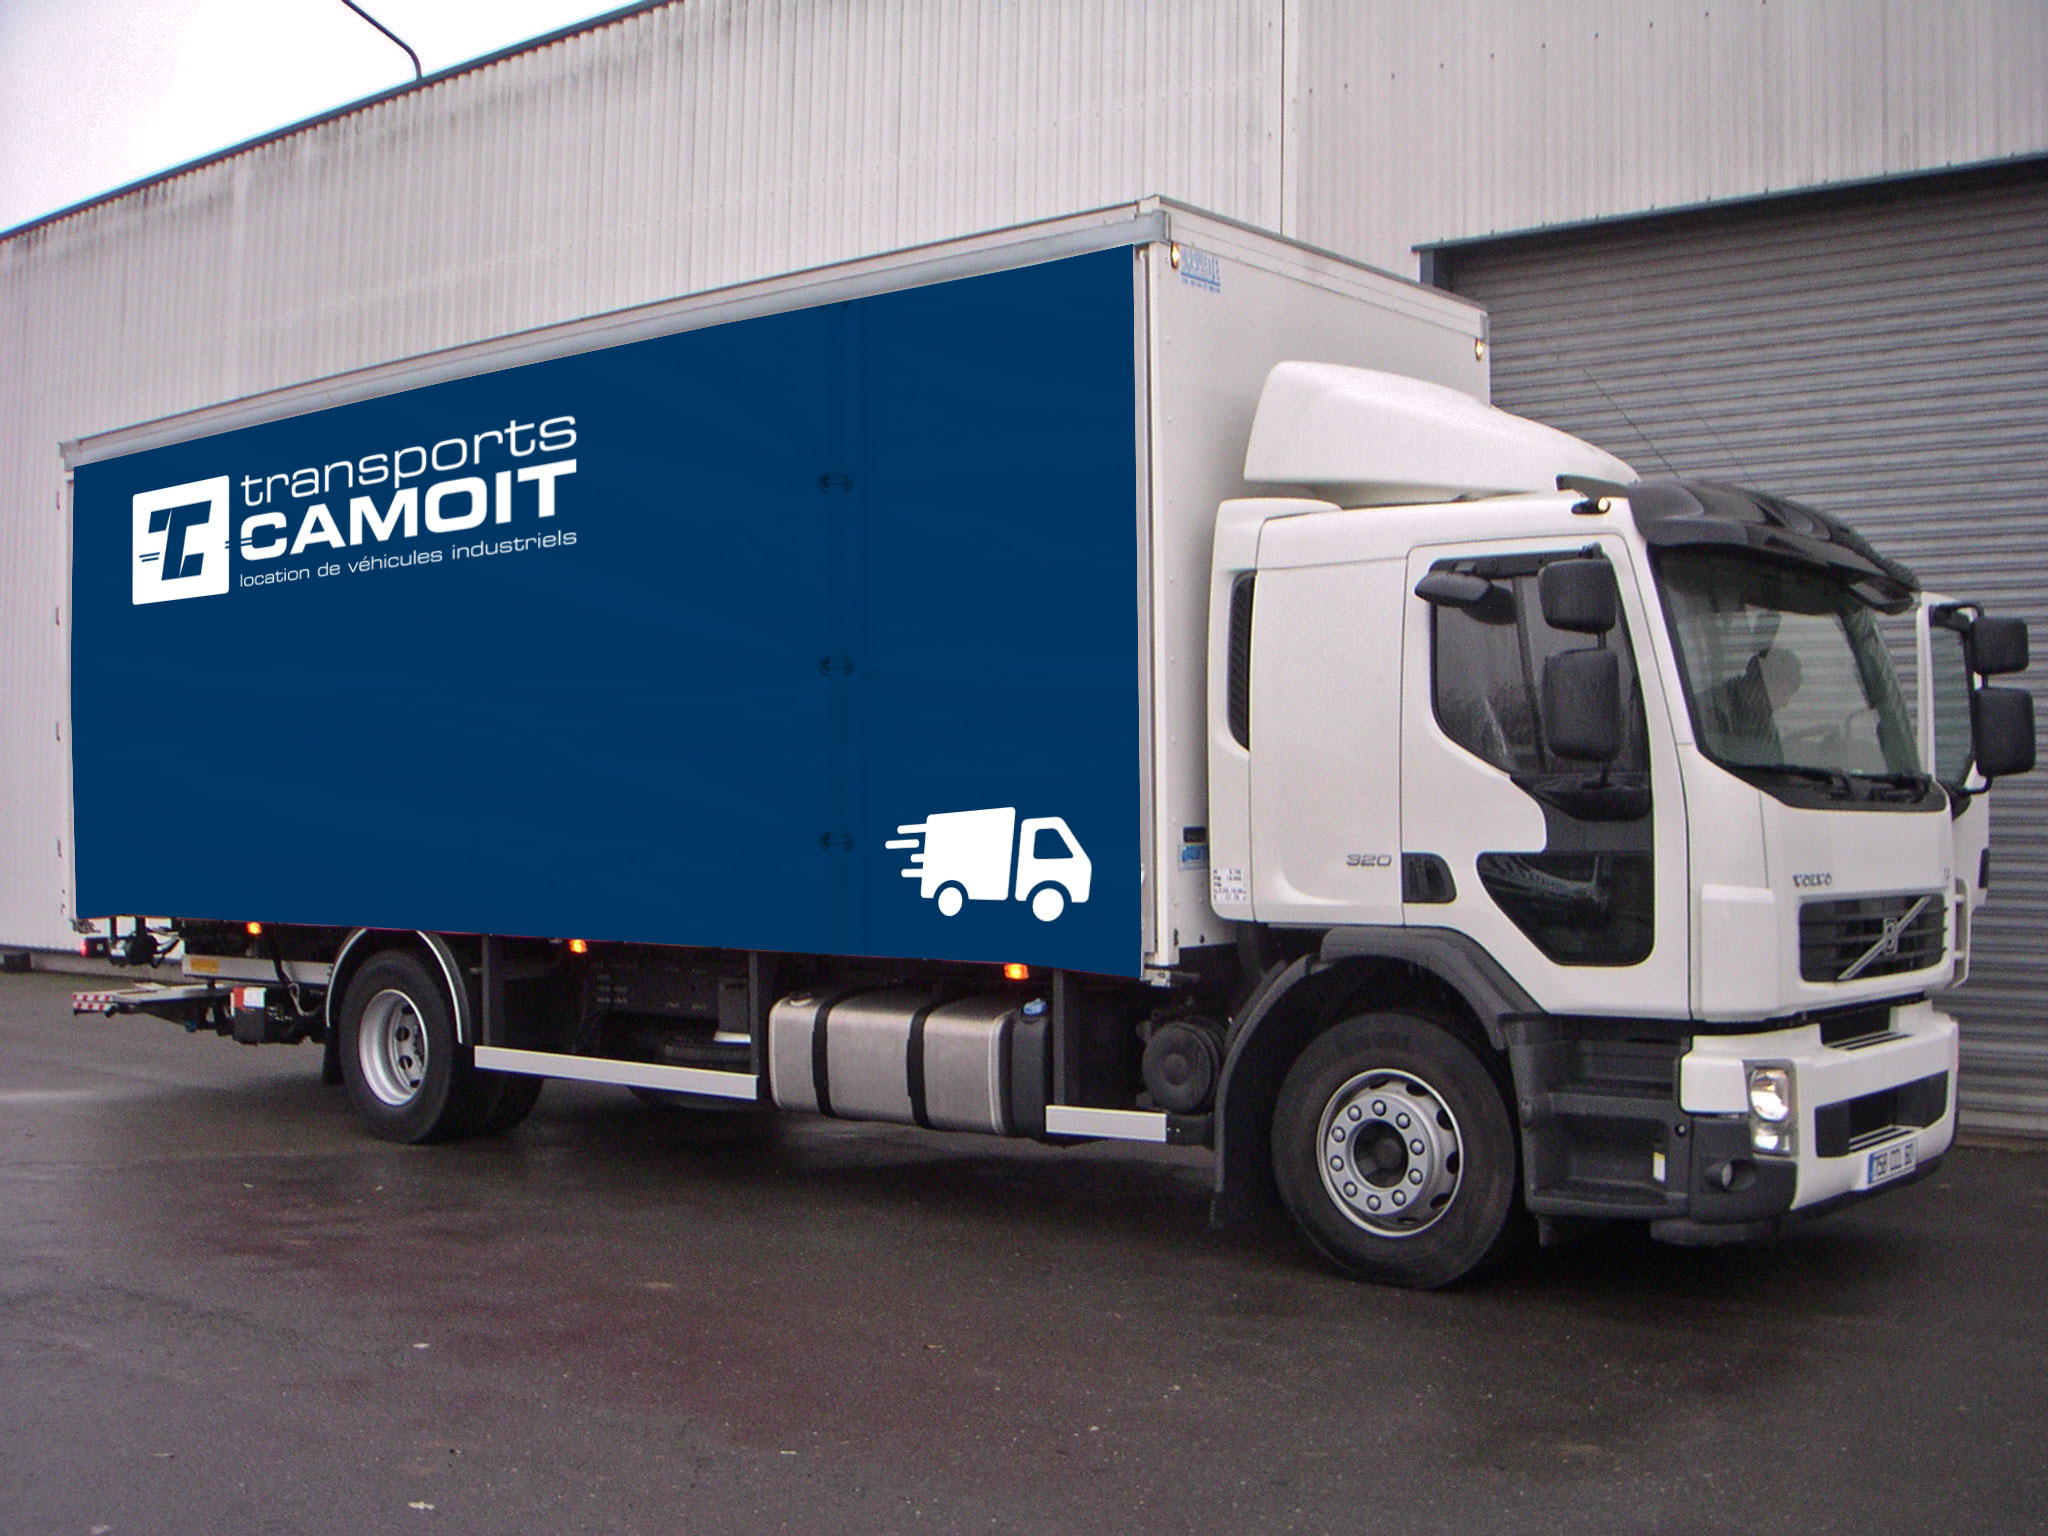 affr tement location de camion avec chauffeur transports camoit. Black Bedroom Furniture Sets. Home Design Ideas